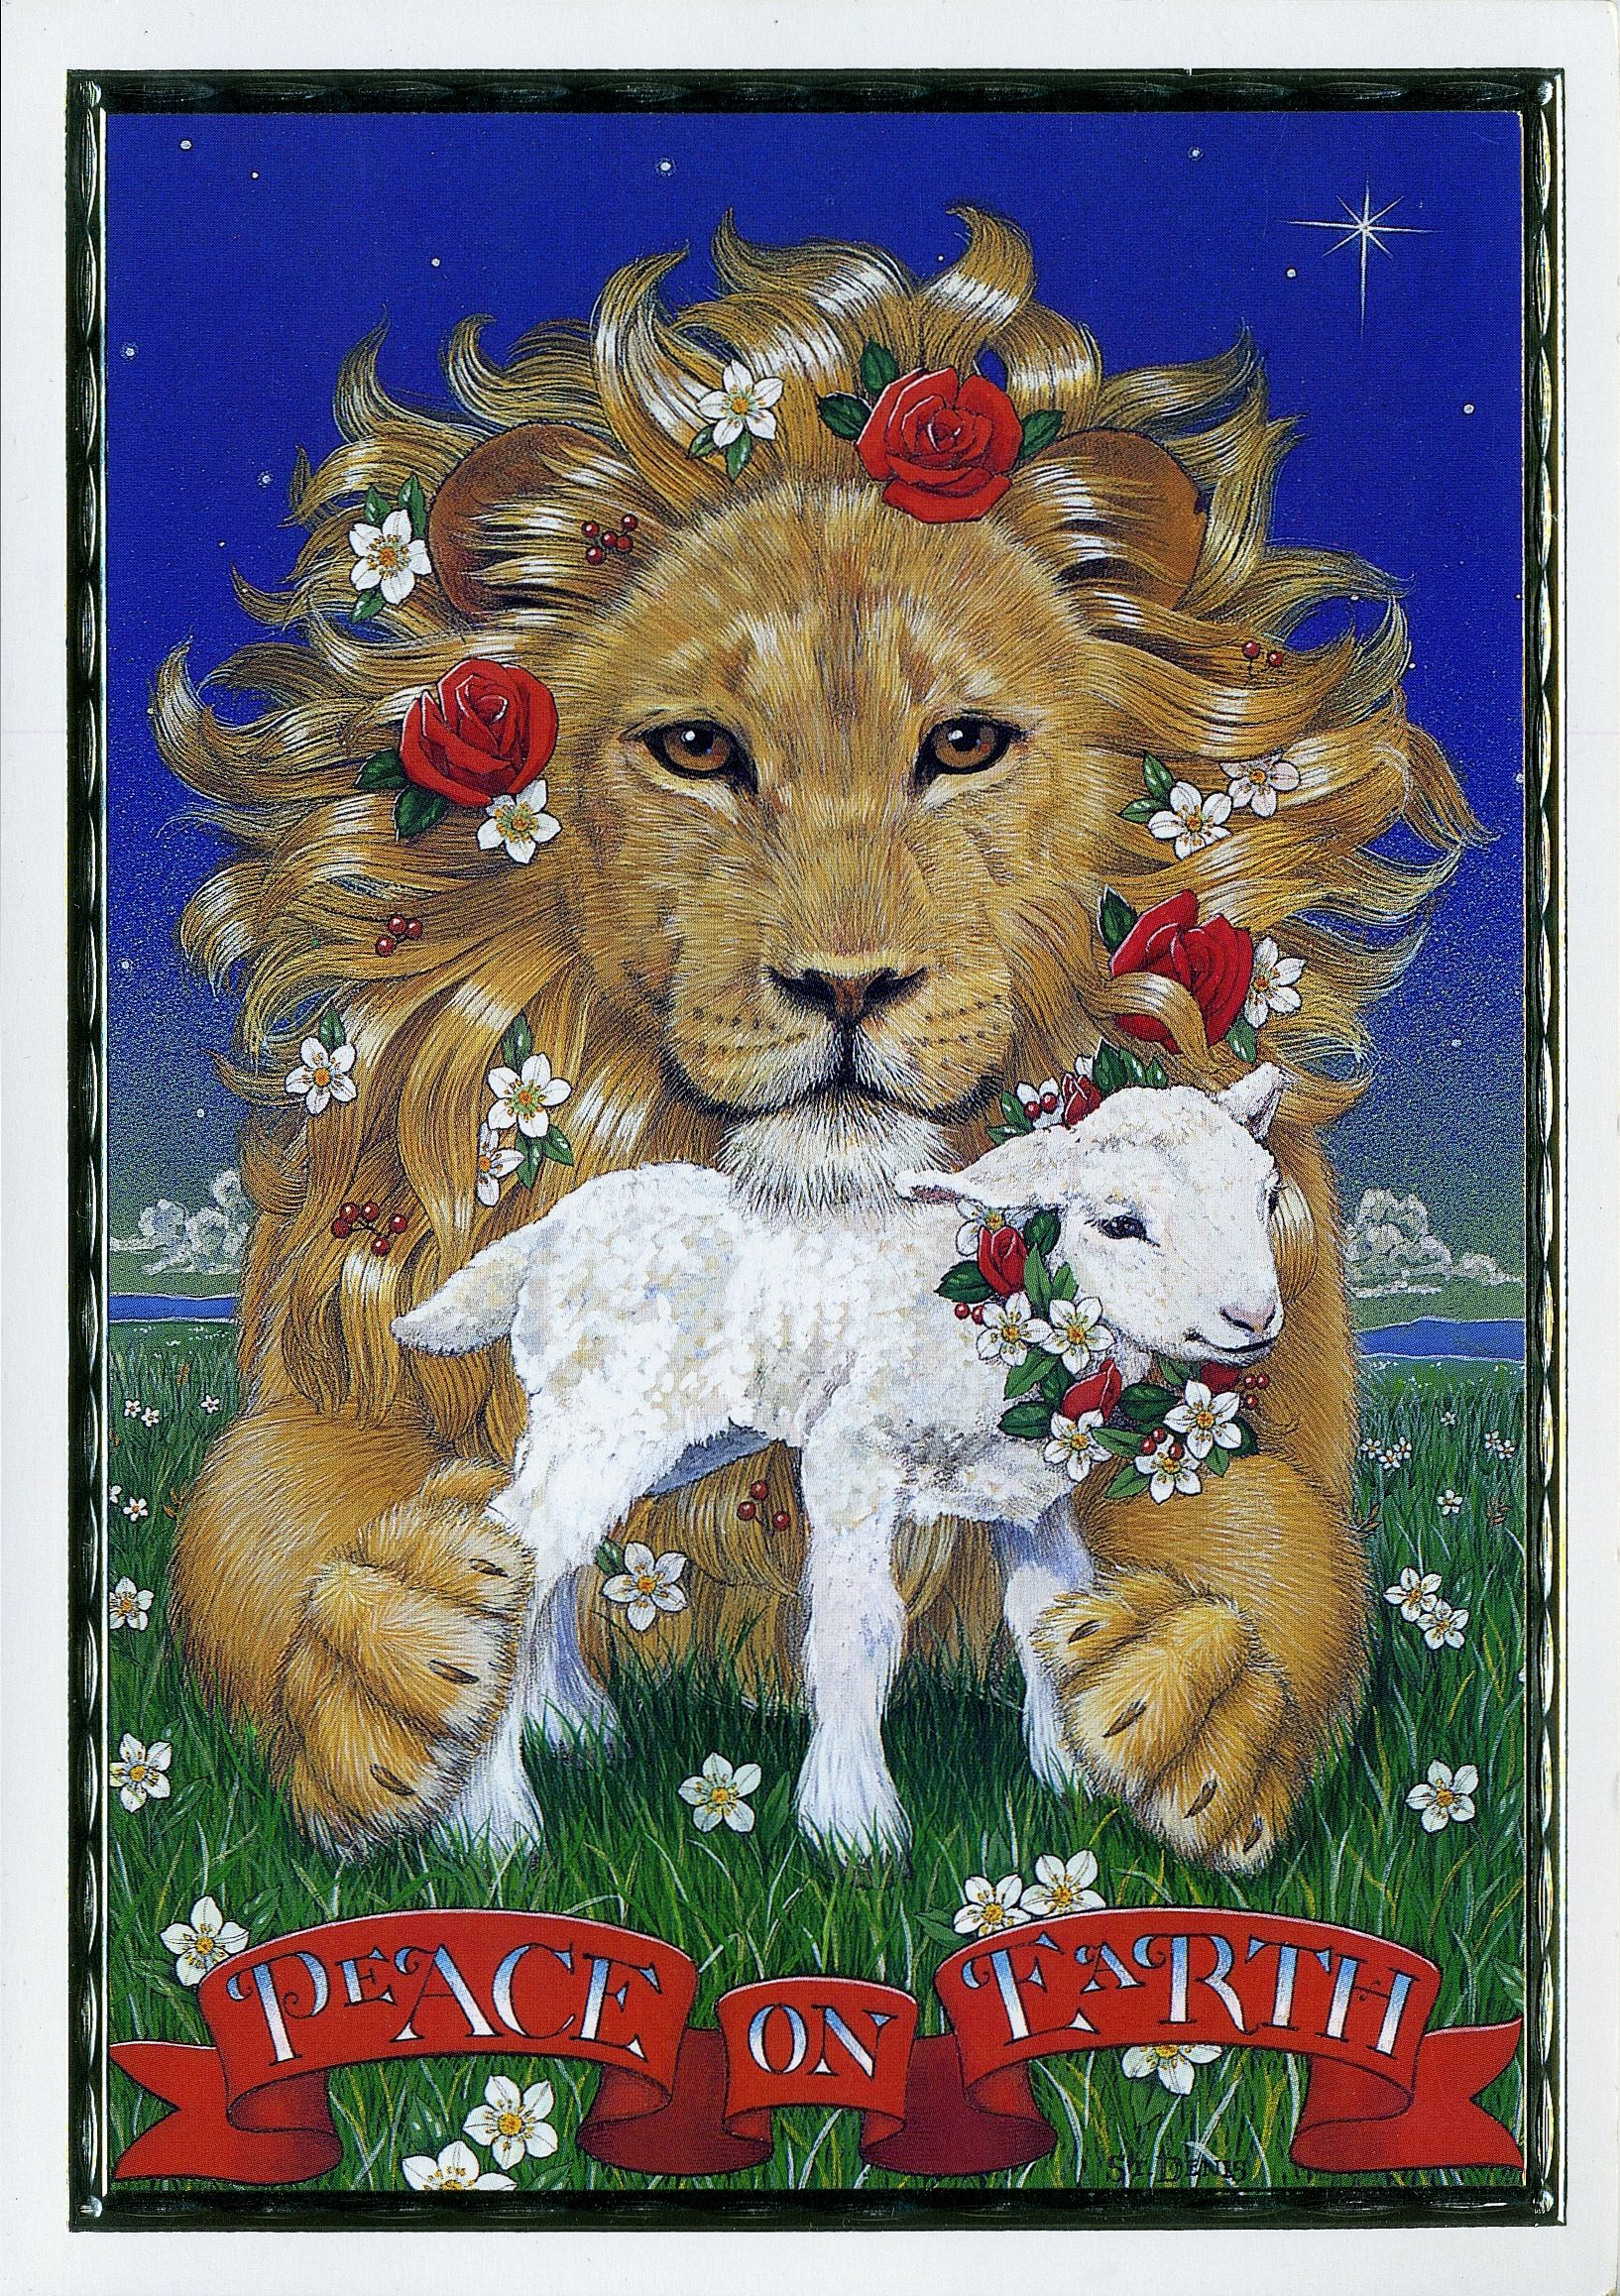 Pin by Claudia Pilon on Peace | Pinterest | Lion and lamb, Lions and ...